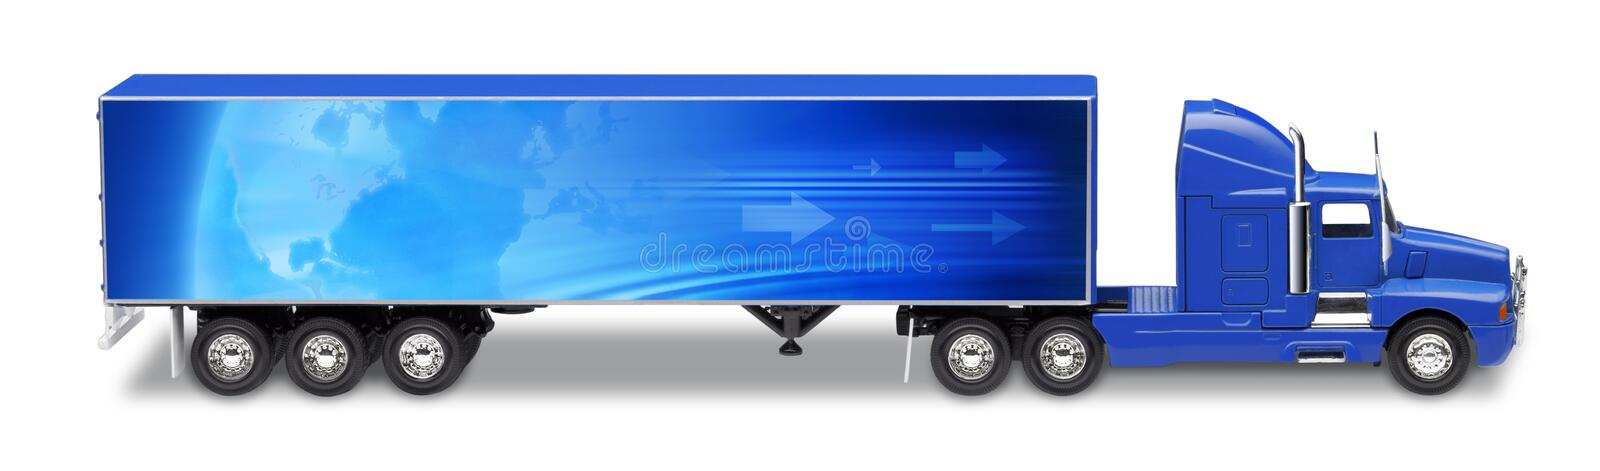 Camion de semi remorque de transport photo stock image - Dessin de camion semi remorque ...